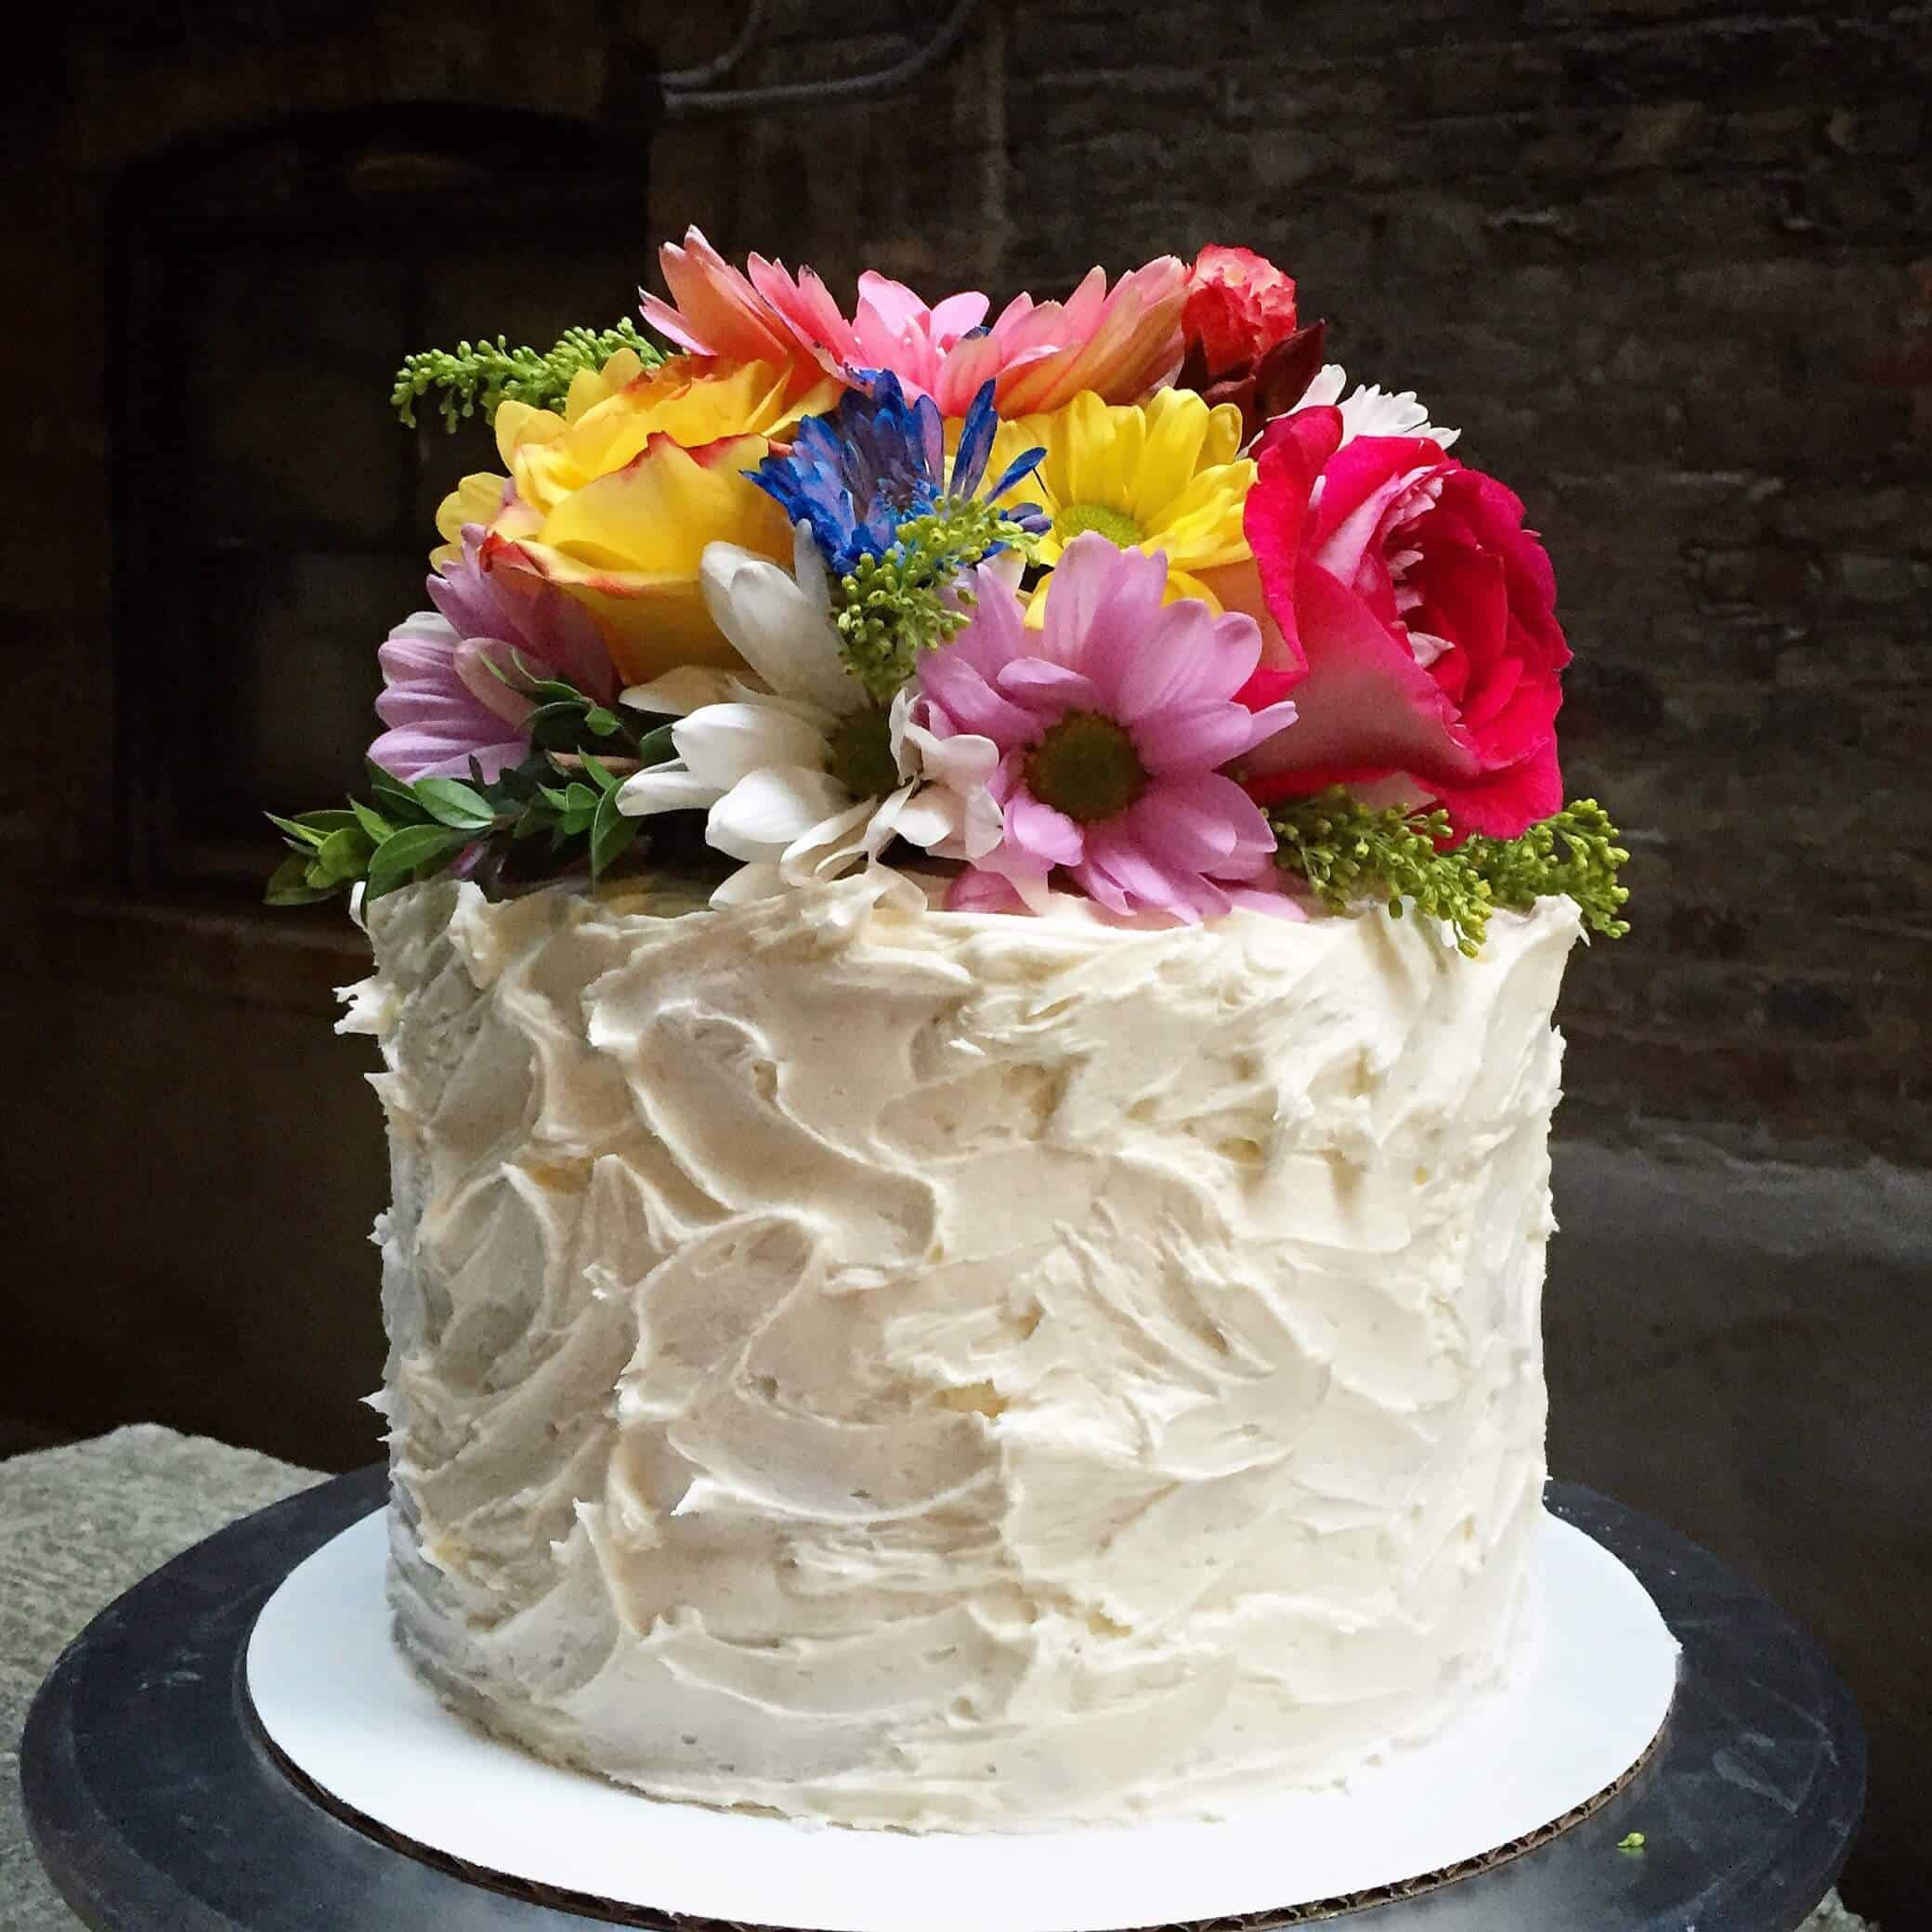 Rose water cake decorated with organic fresh flowers